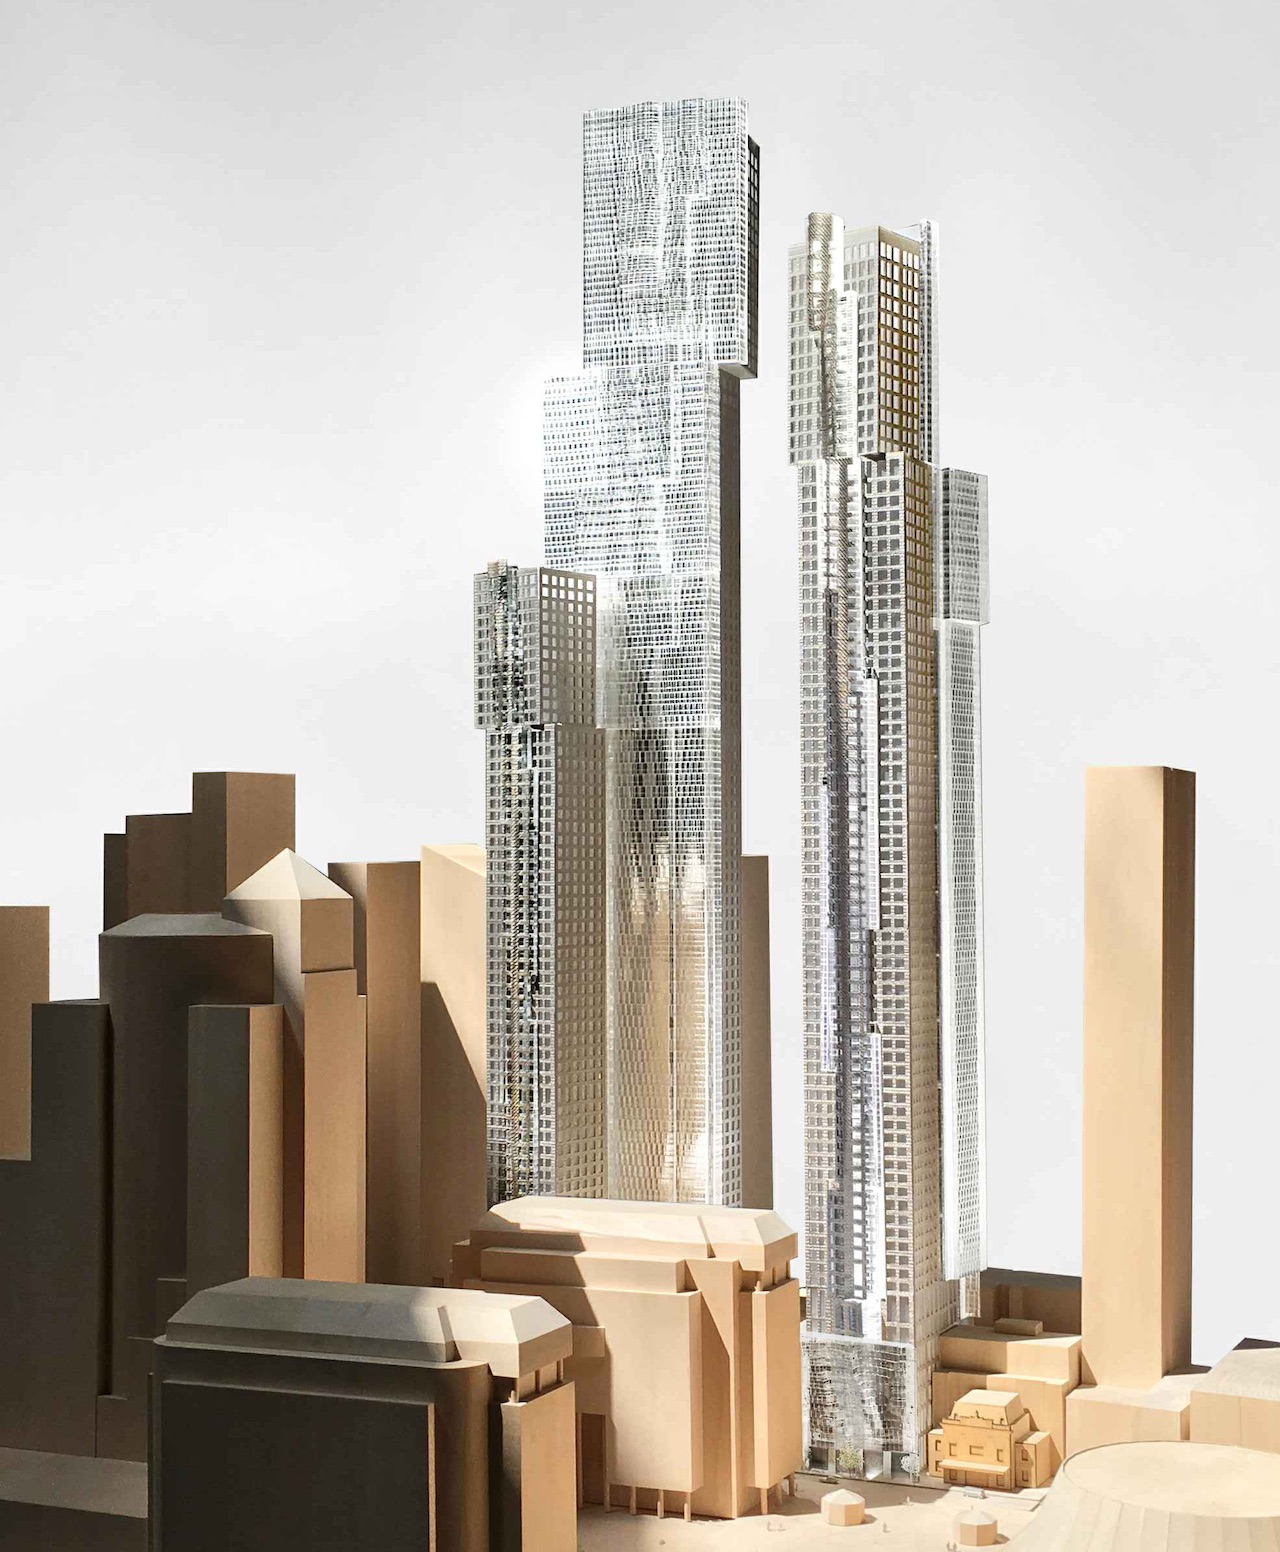 Mirvish+Gehry, Toronto, designed by Gehry for Great Gulf and Dream